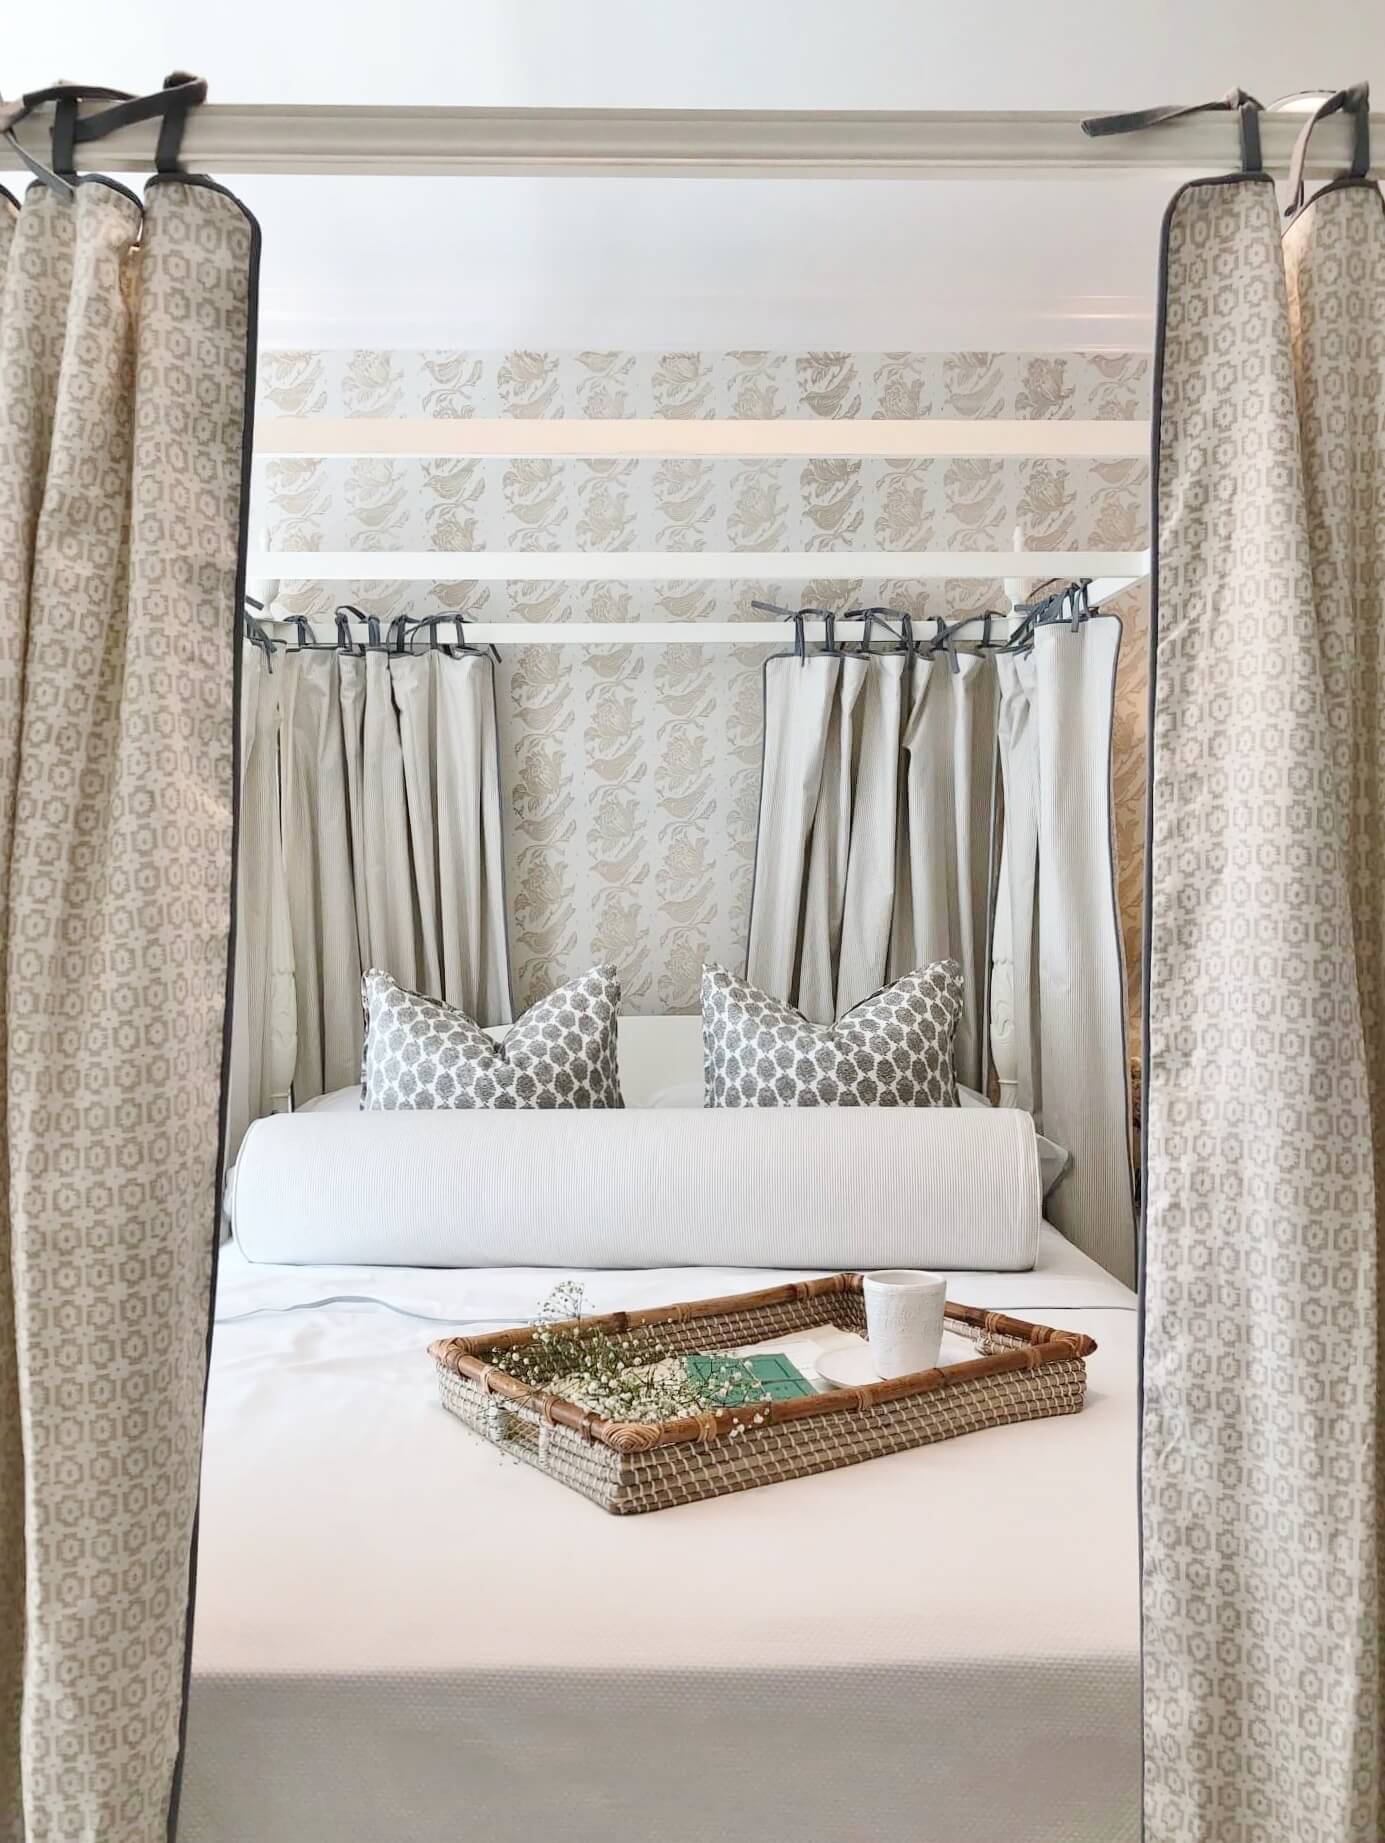 This bedroom was a vision of neutral, tone on tone pattern creating a private space with a lovely canopy bed. Designer, Sherrell Neal, Sherrell Design Studio | ASID River Oaks Showhouse #canopybed #neutralbedroom #whitebedding